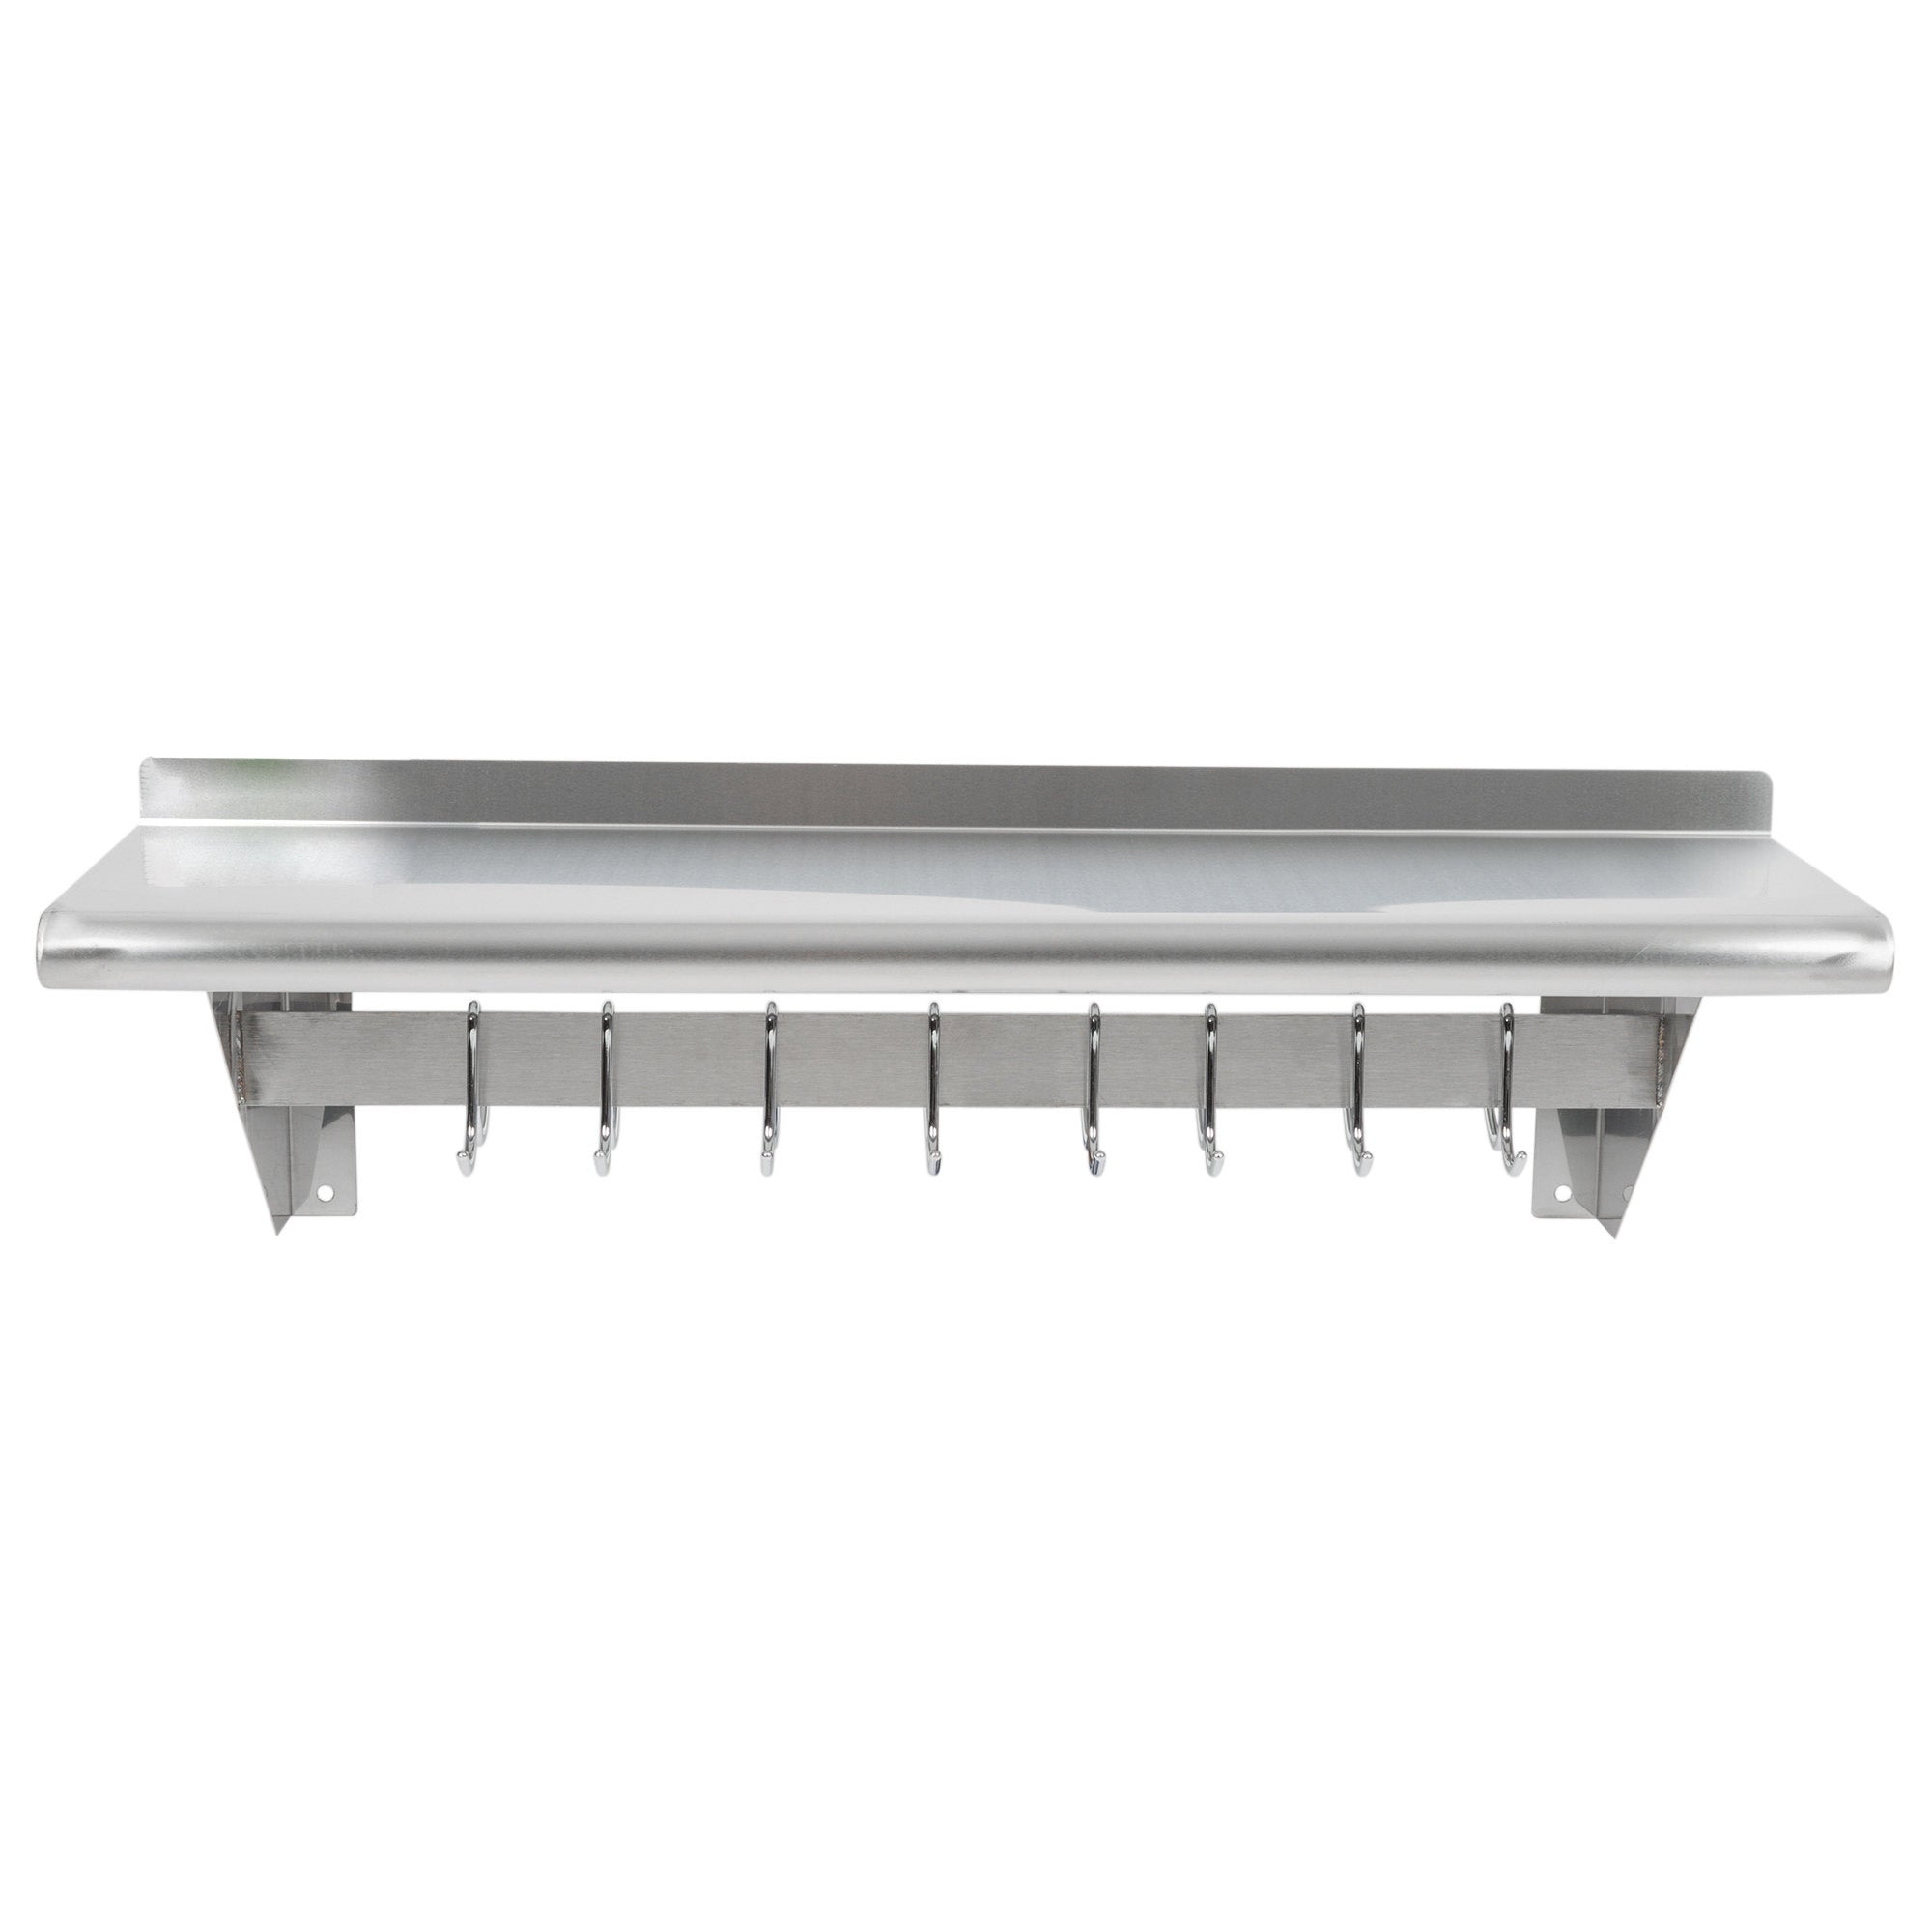 "12"" x 36"" Stainless Steel Wall Mounted Pot Rack with Shelf and 18 Galvanized Hooks - AmGoodSupply.com"